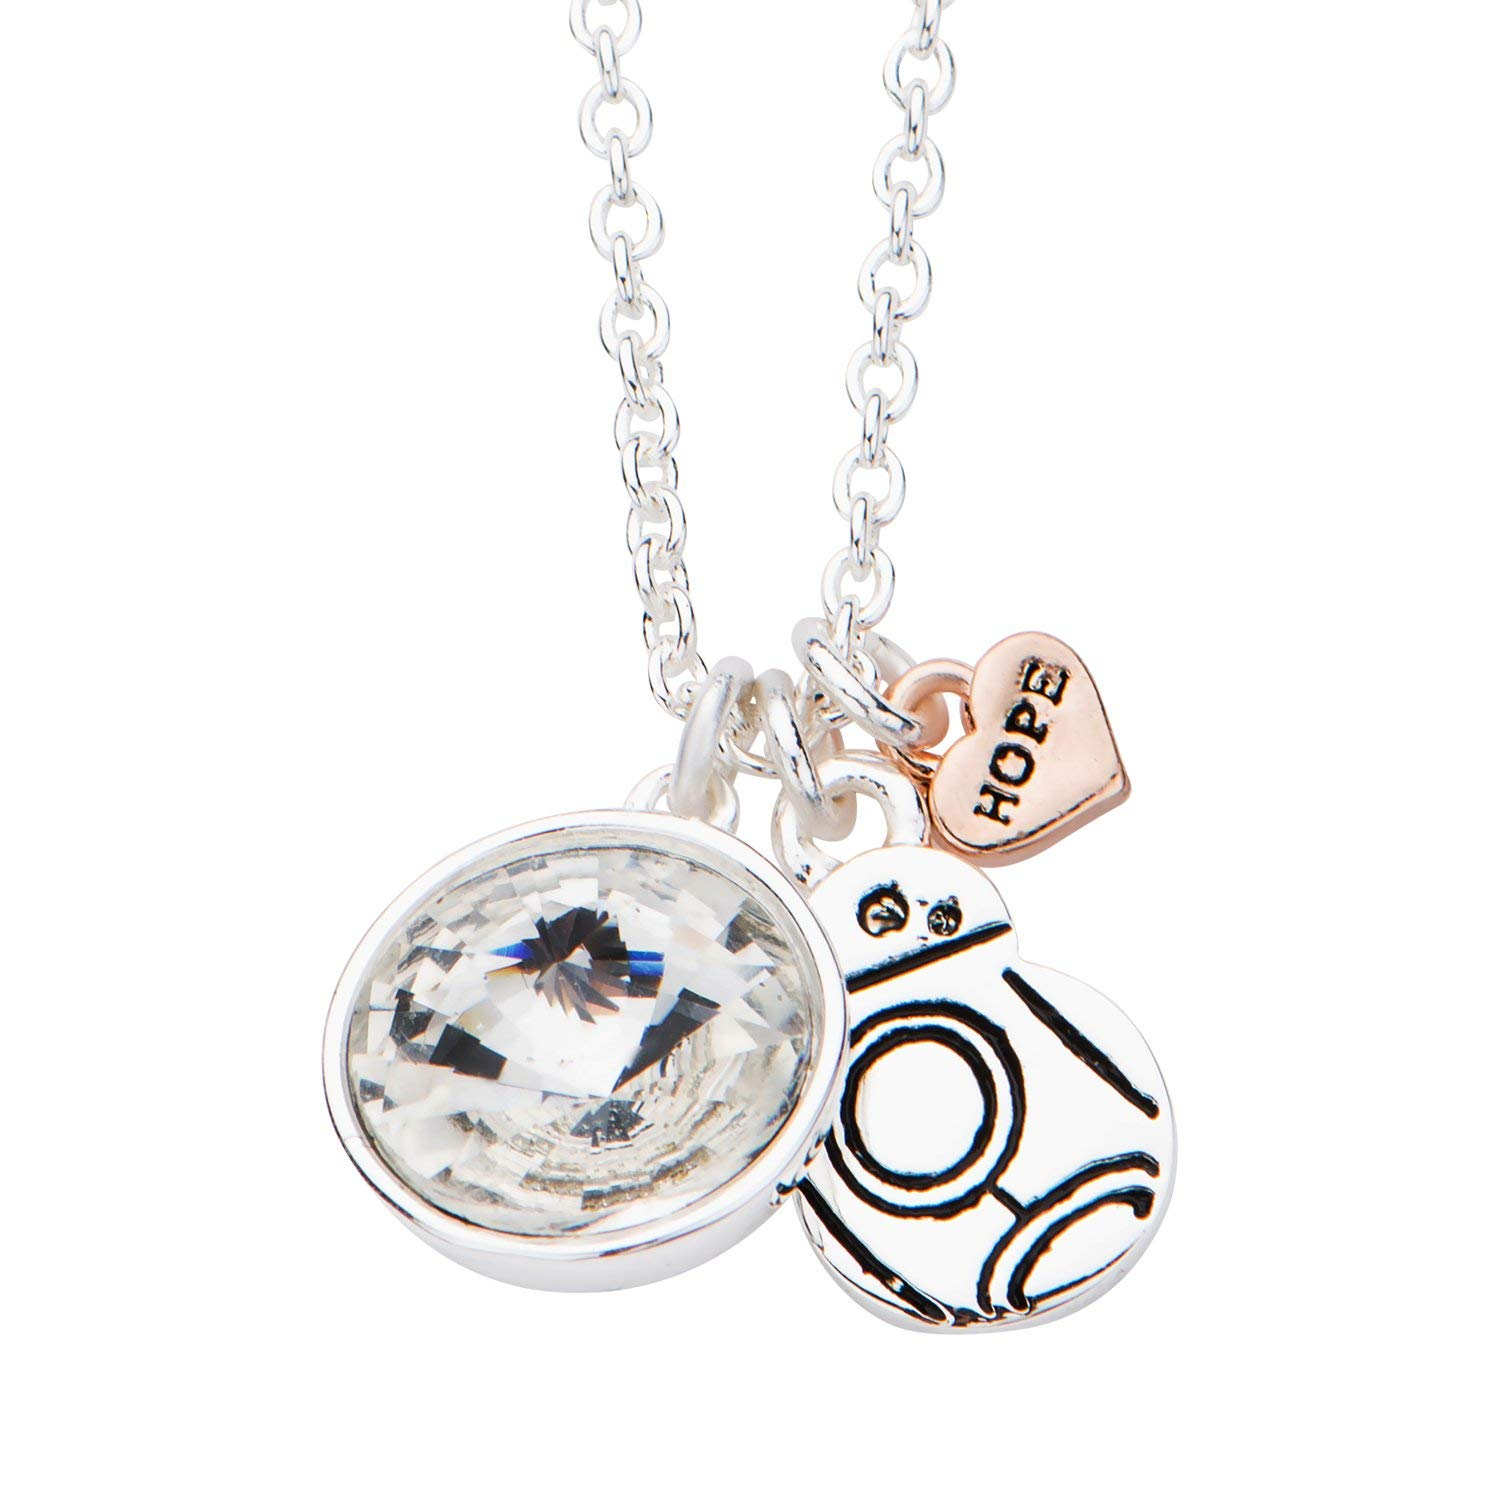 Body Vibe x Star Wars BB-8 Hope Charm Necklace on Amazon